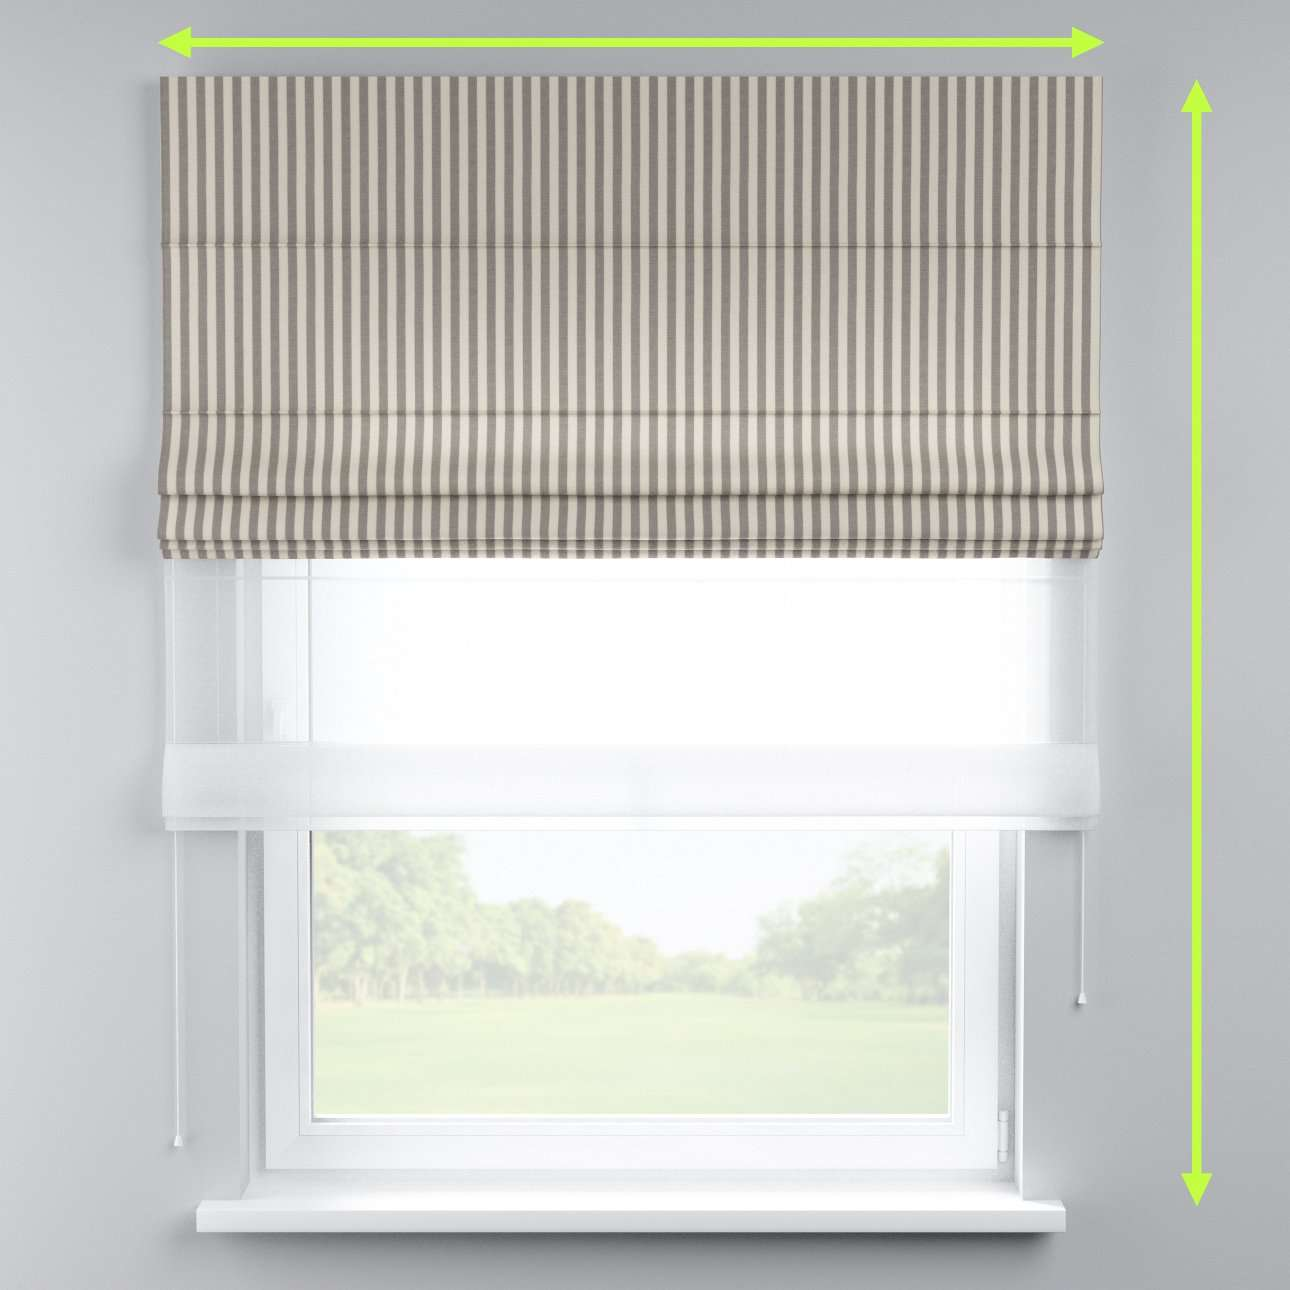 Voile and fabric roman blind (DUO II) in collection Quadro, fabric: 136-12